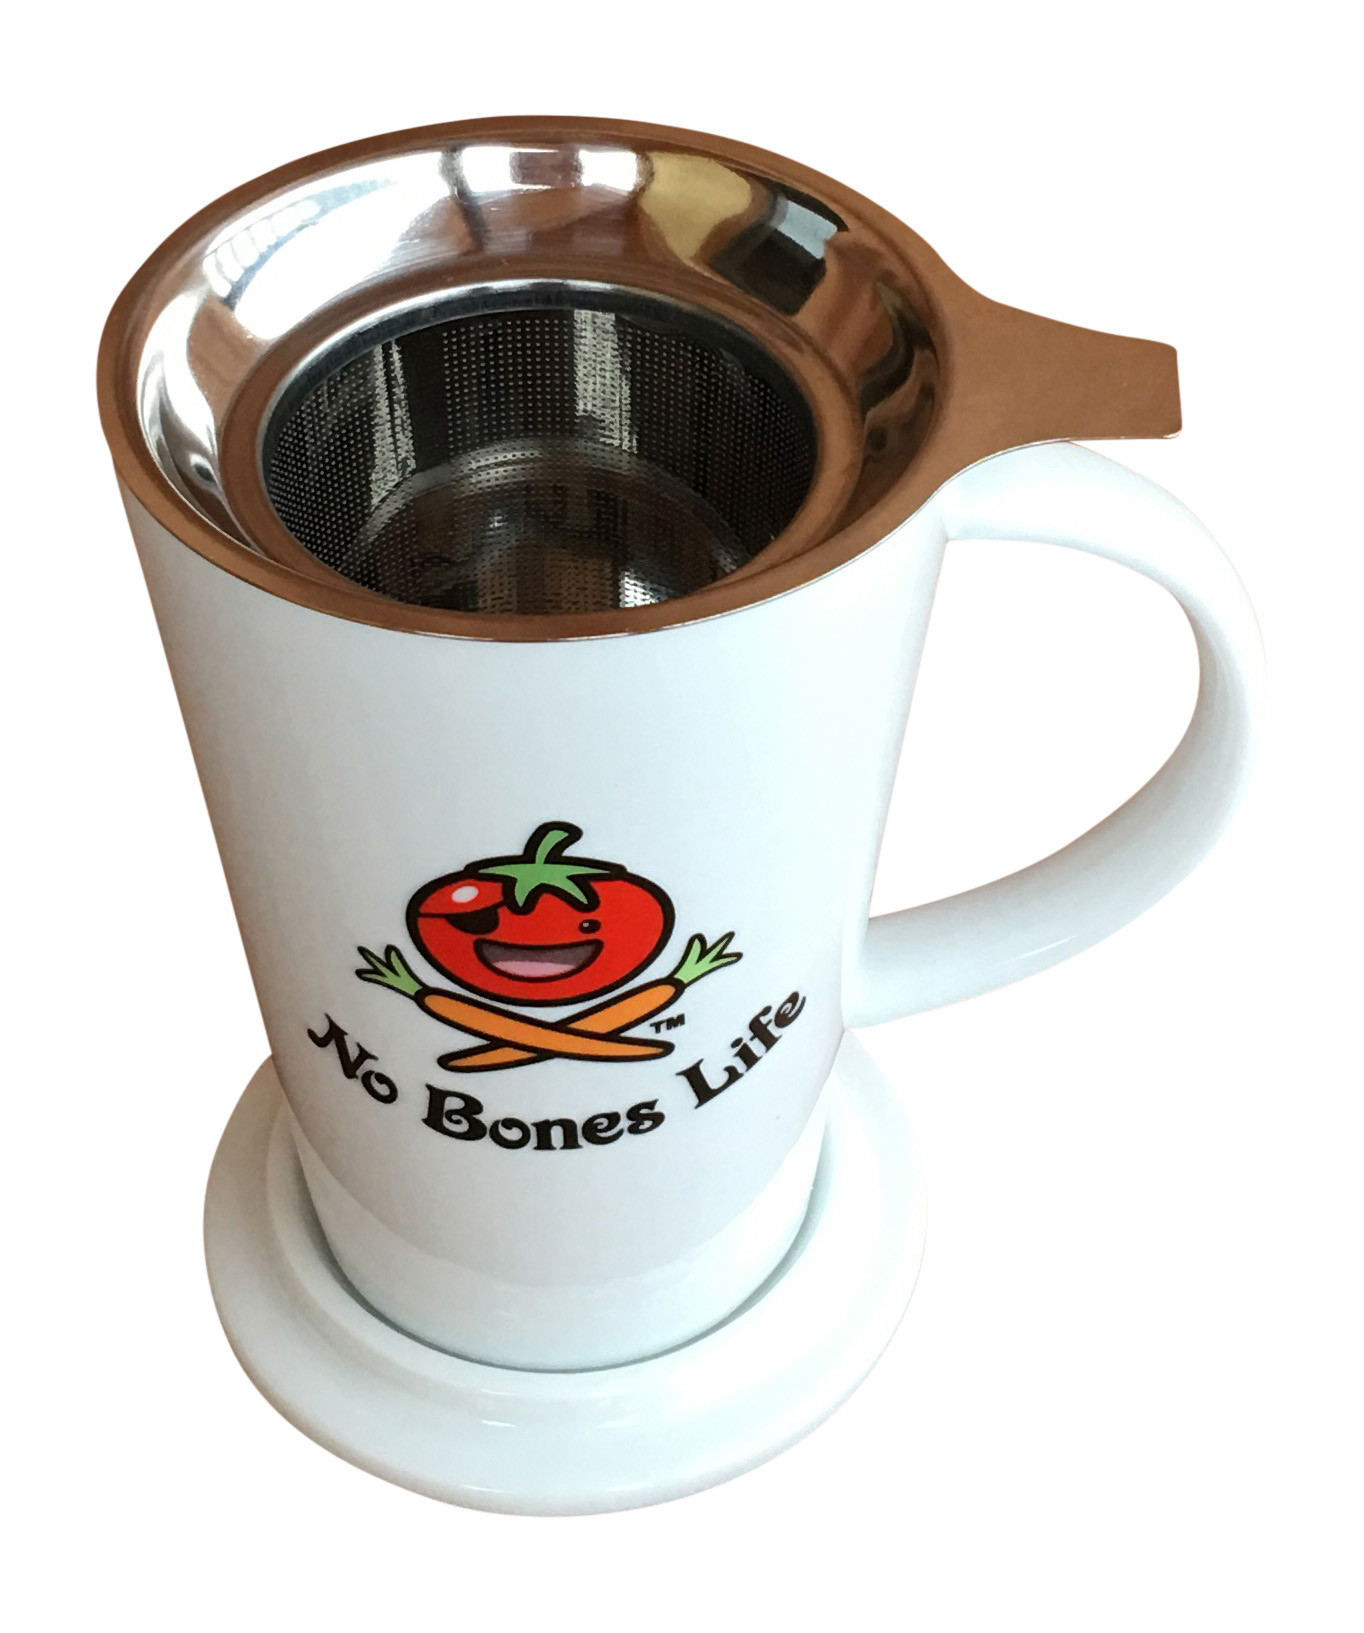 porcelain mug with stainless steel infuser